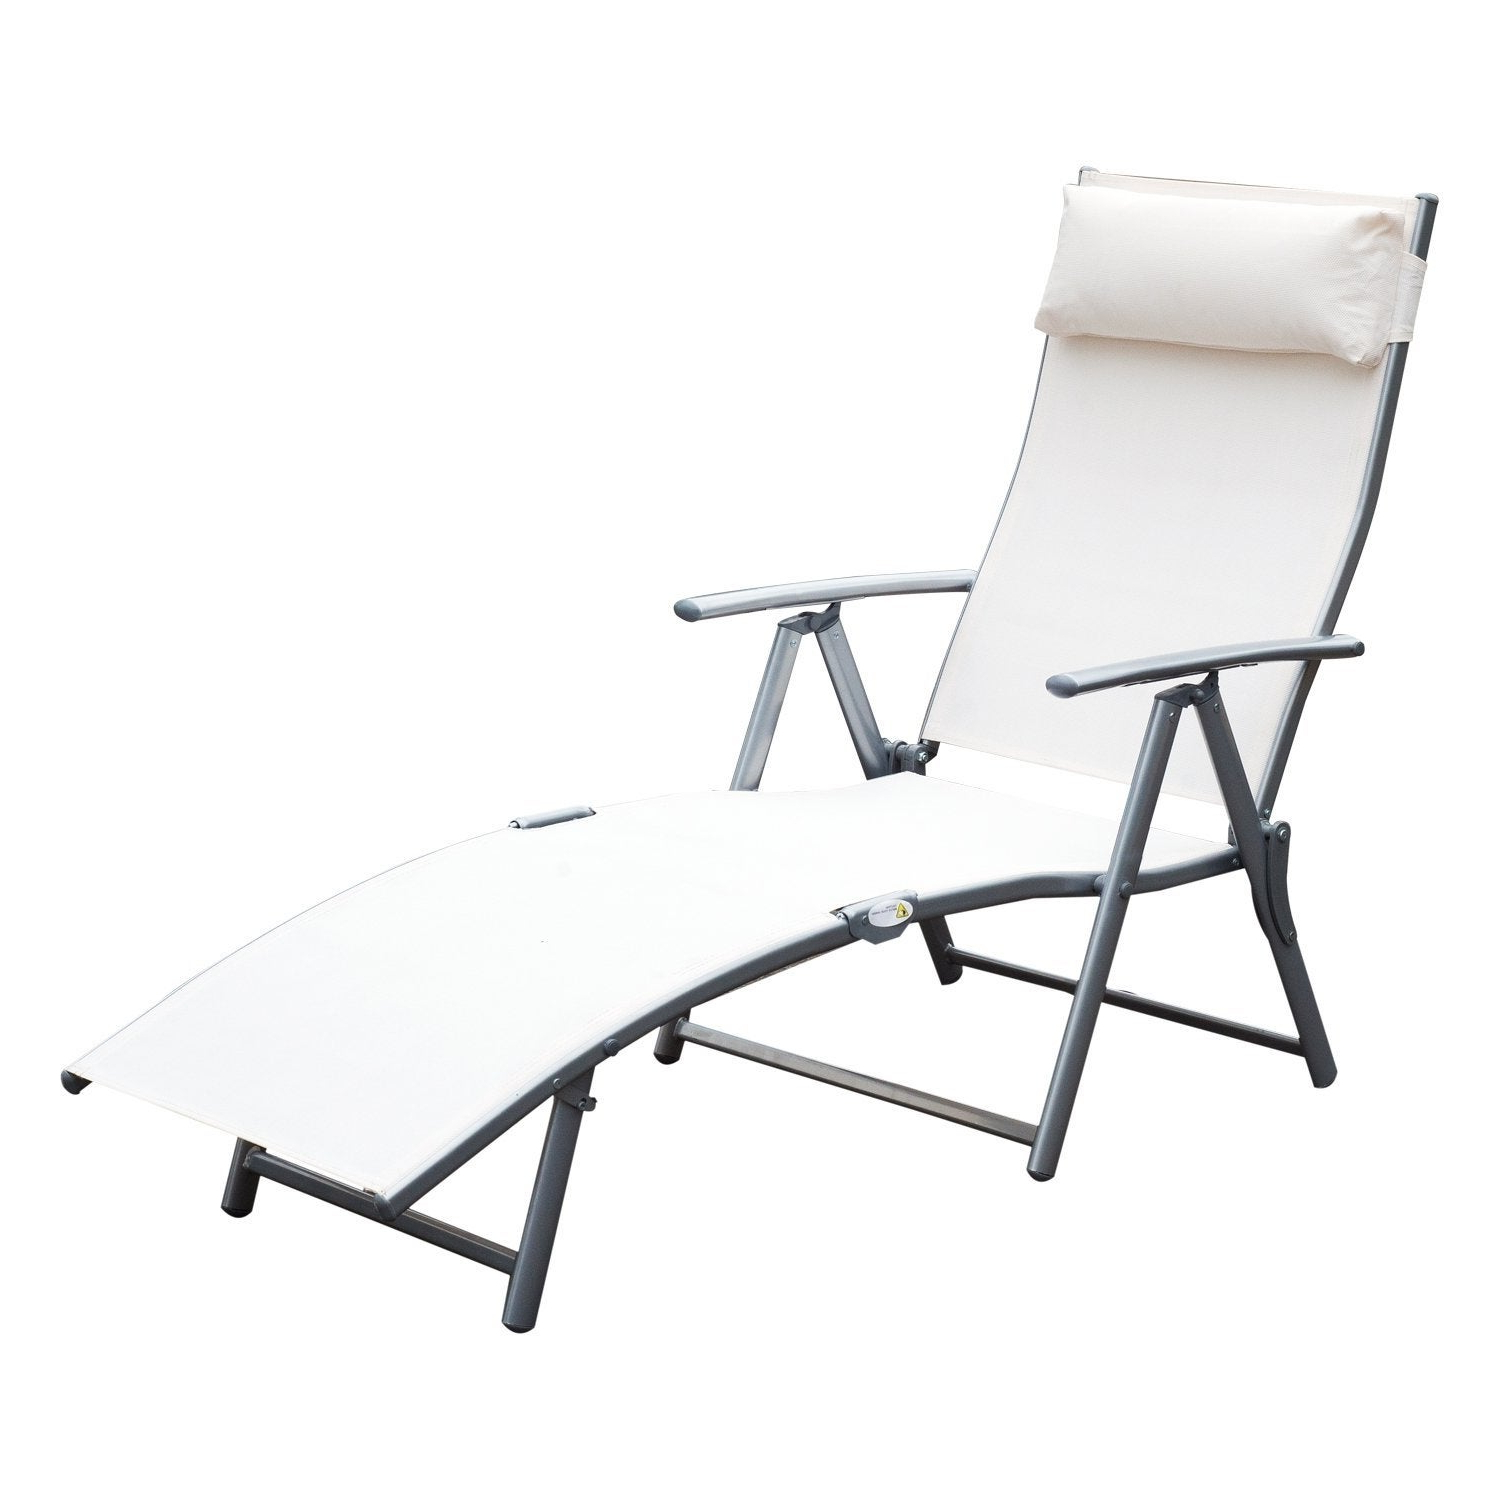 Favorite Steel Sling Fabric Outdoor Folding Chaise Lounges For Outsunny Steel Sling Fabric Outdoor Folding Chaise Lounge Chair Recliner –  Cream White (View 5 of 25)